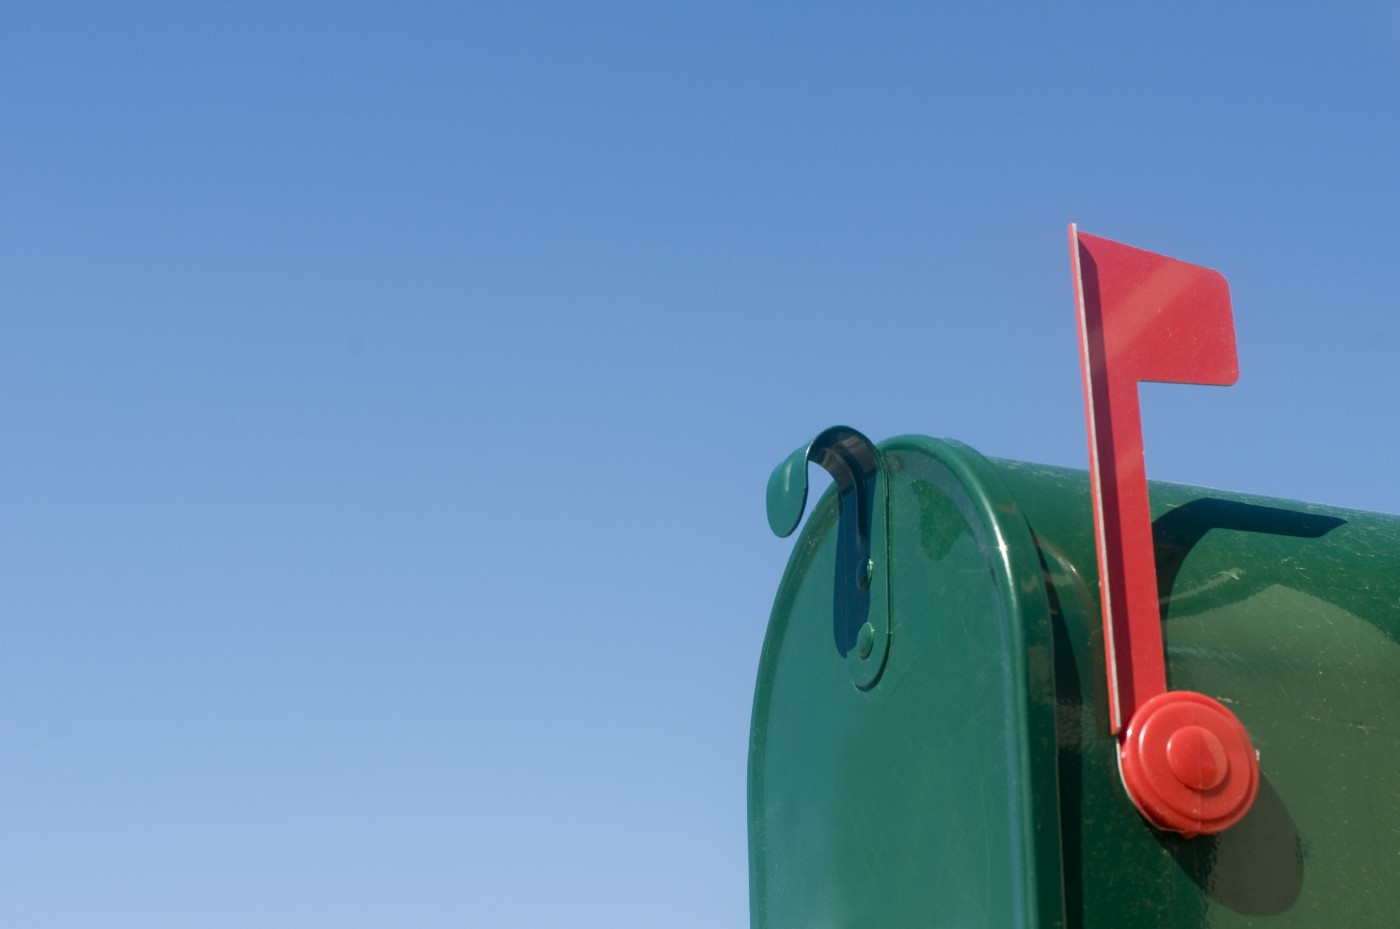 Outgoing mail in green mailbox with a red flag in upright position.